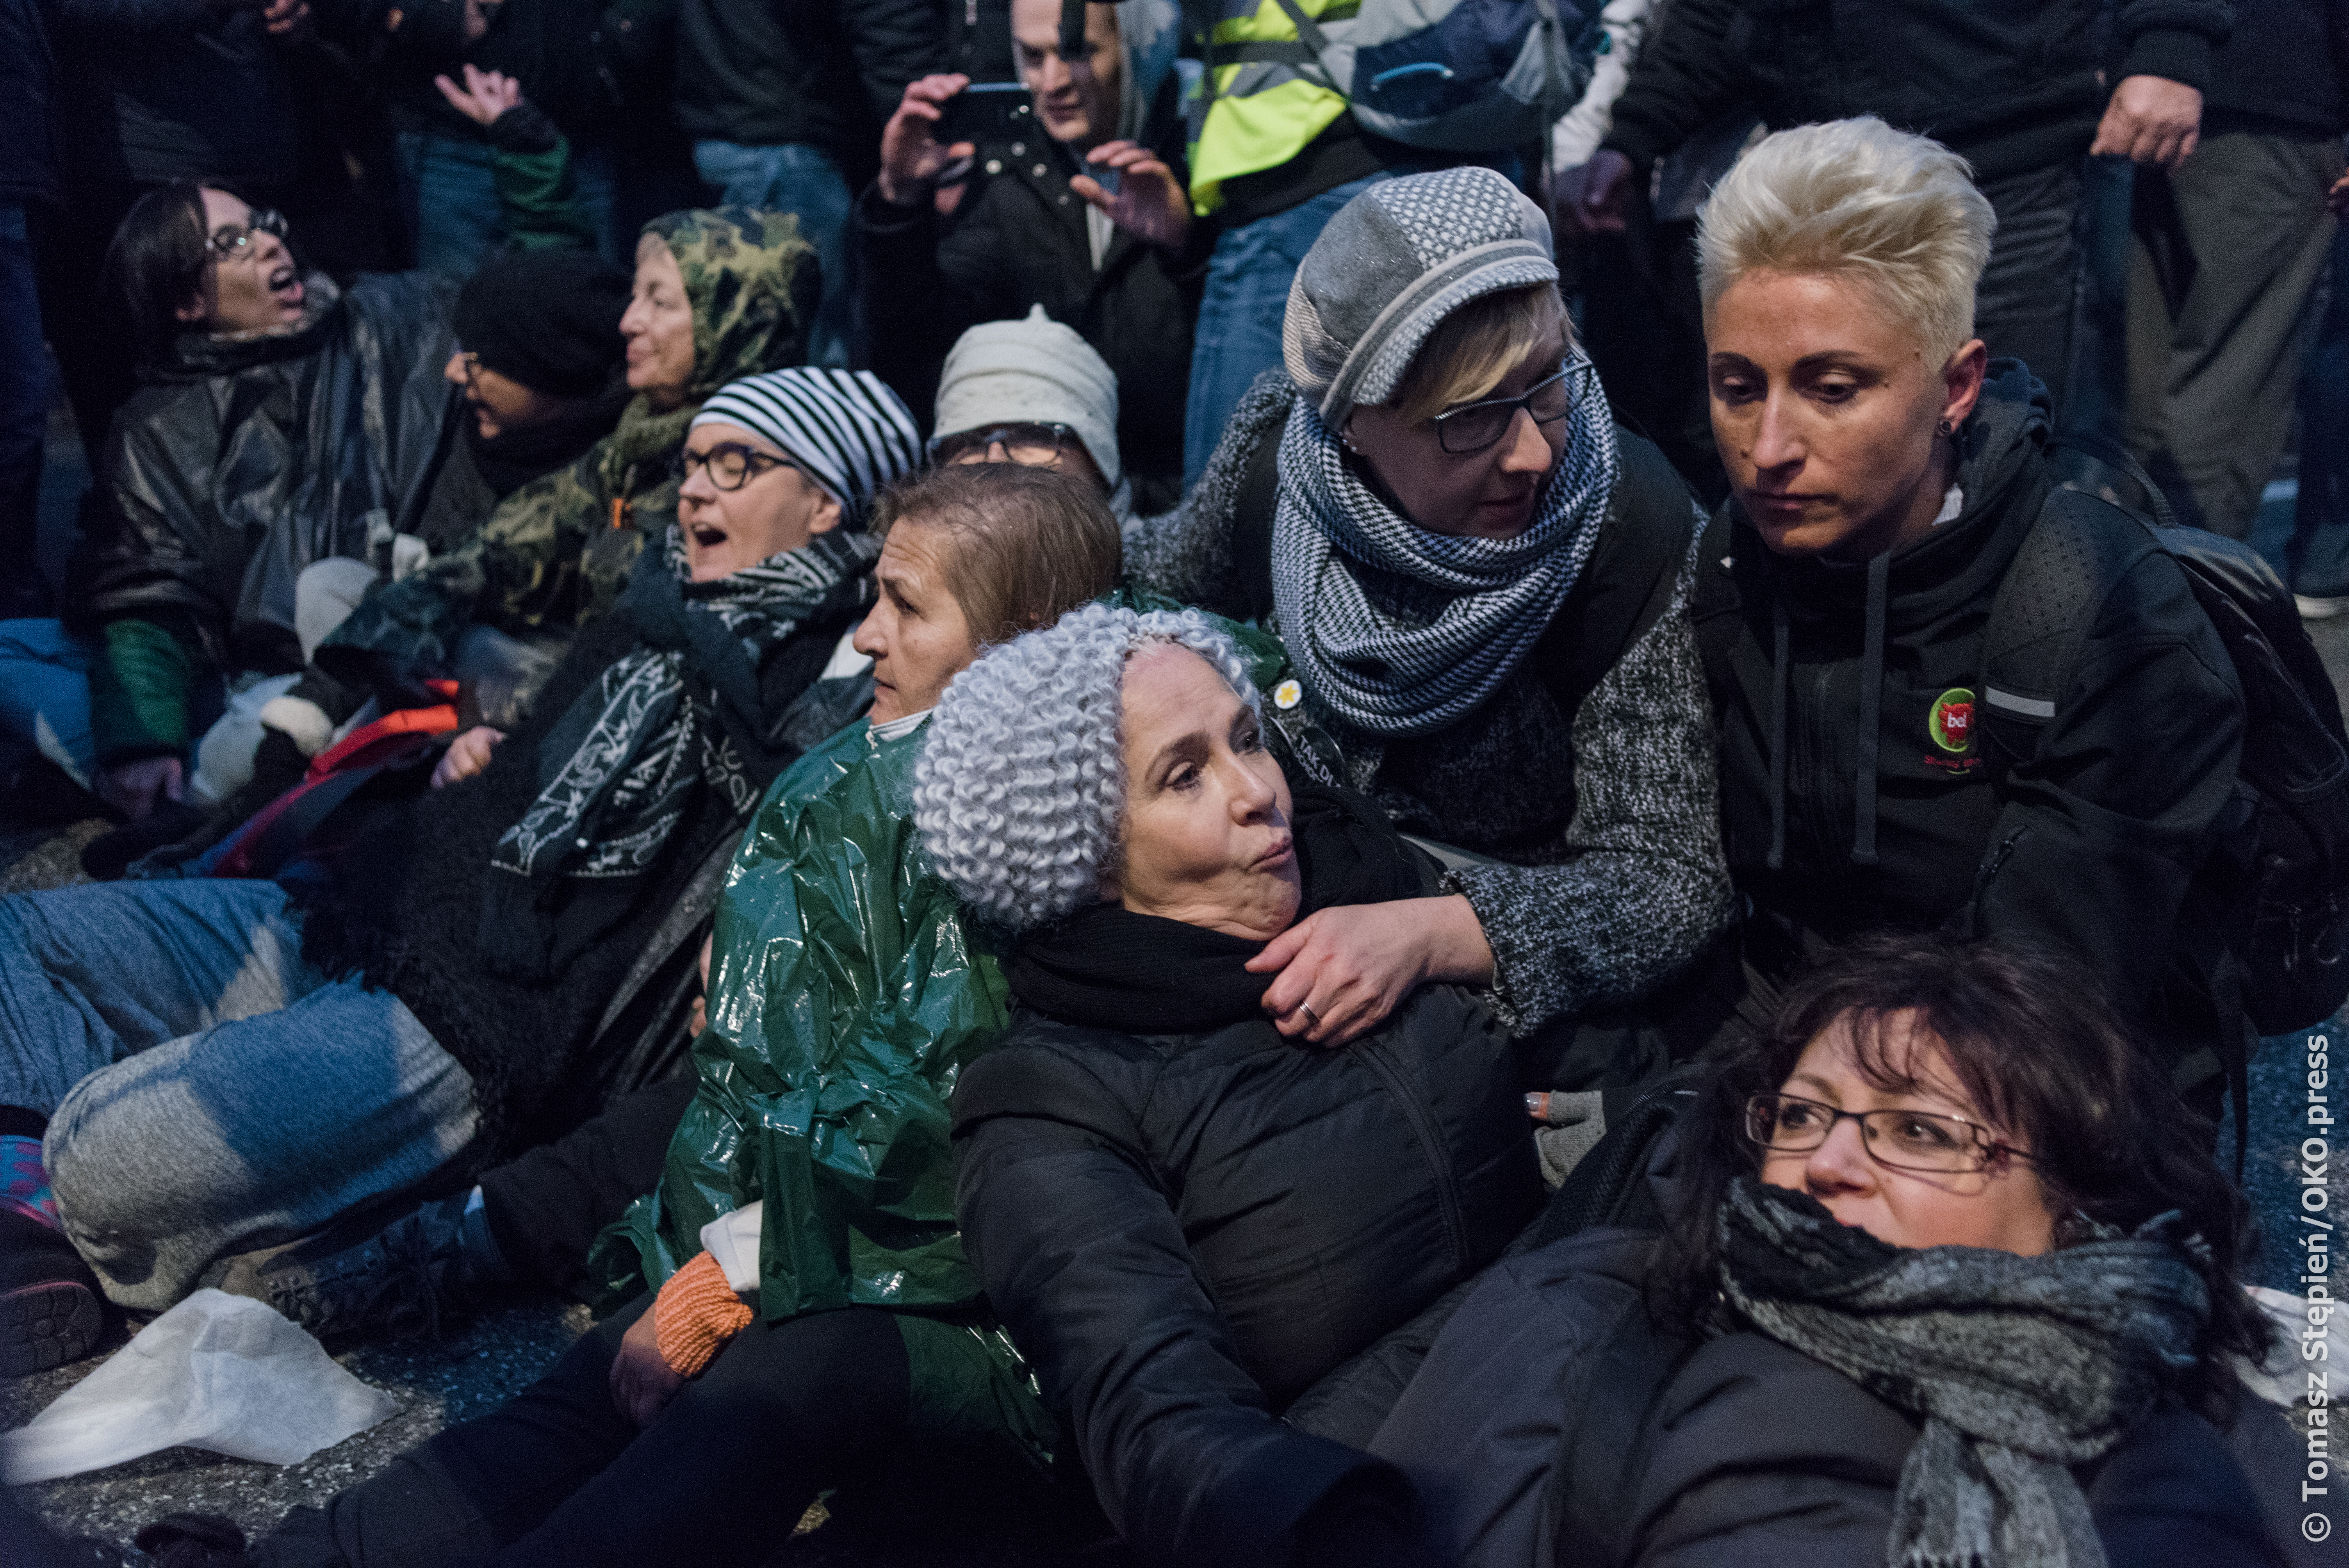 257094_Warsaw - Women who were attacked during Independence march protest on 11 November 2017.jpg